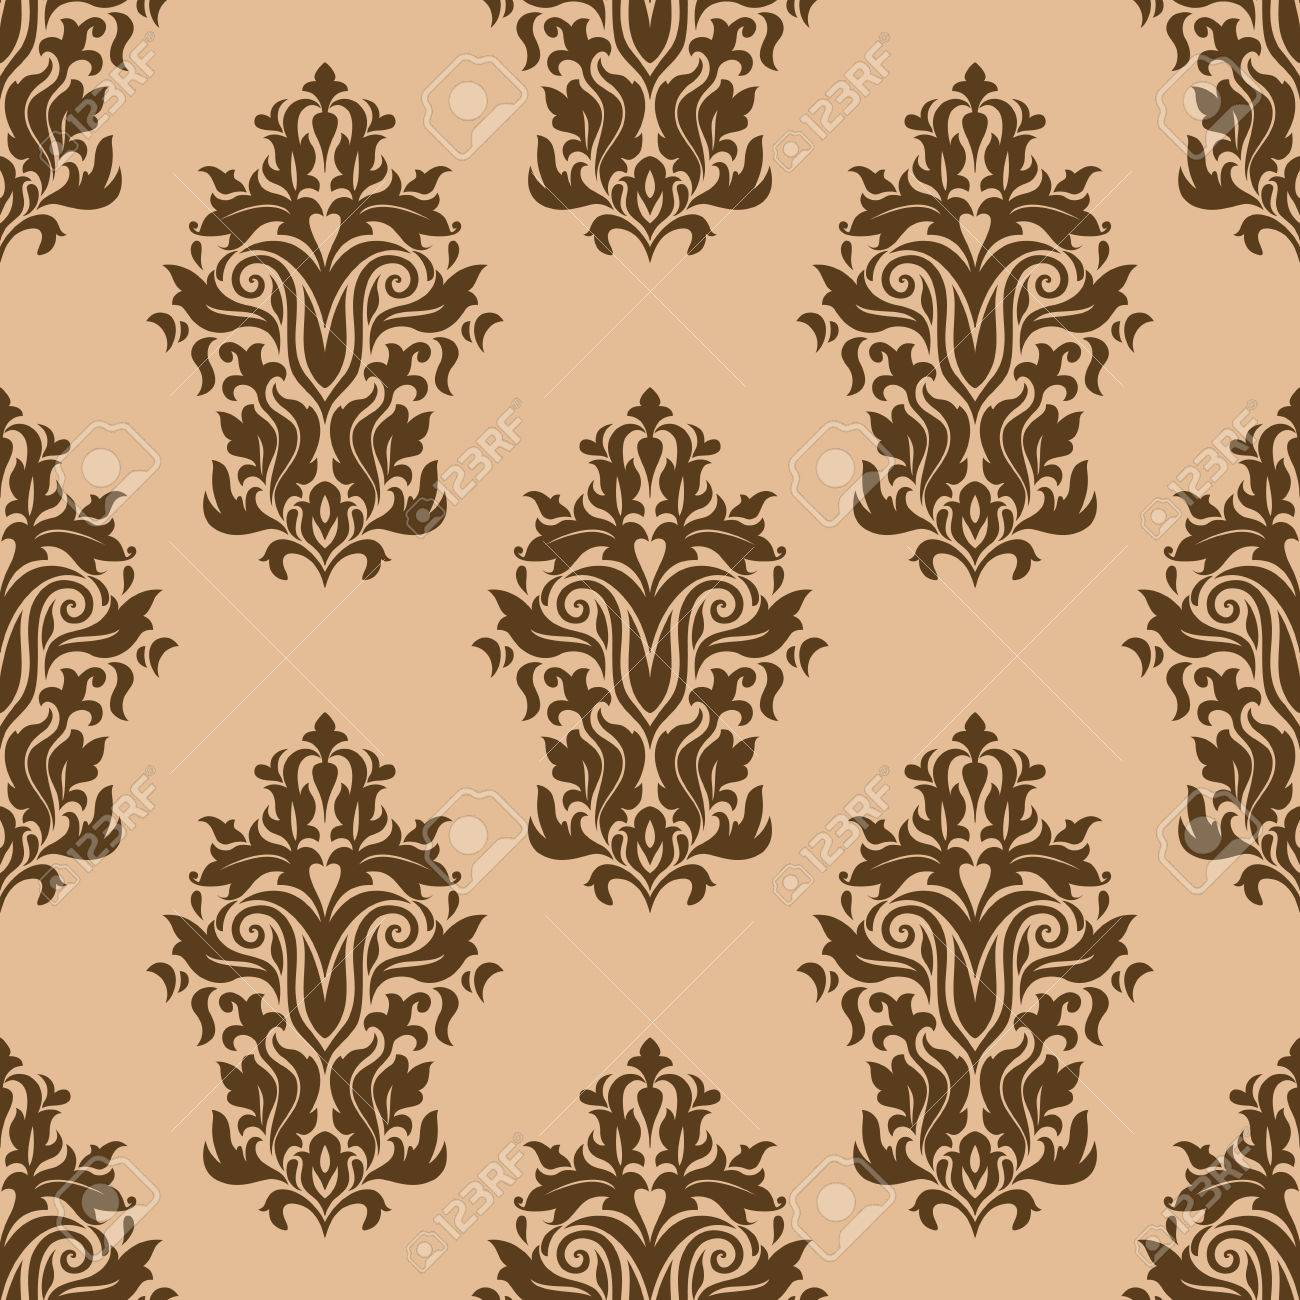 Floral Retro Dark Brown Seamless Pattern On Light Brown Colored